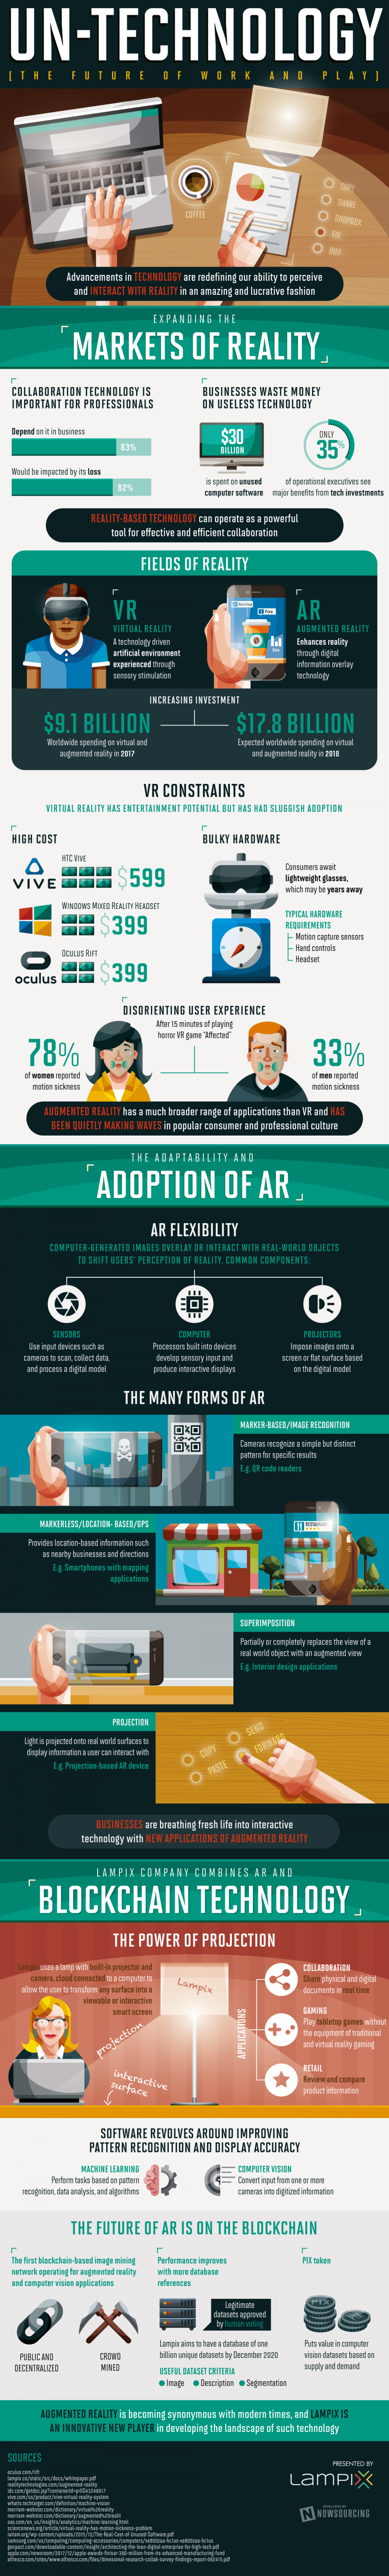 Augmented Reality Un-Technology Infographic